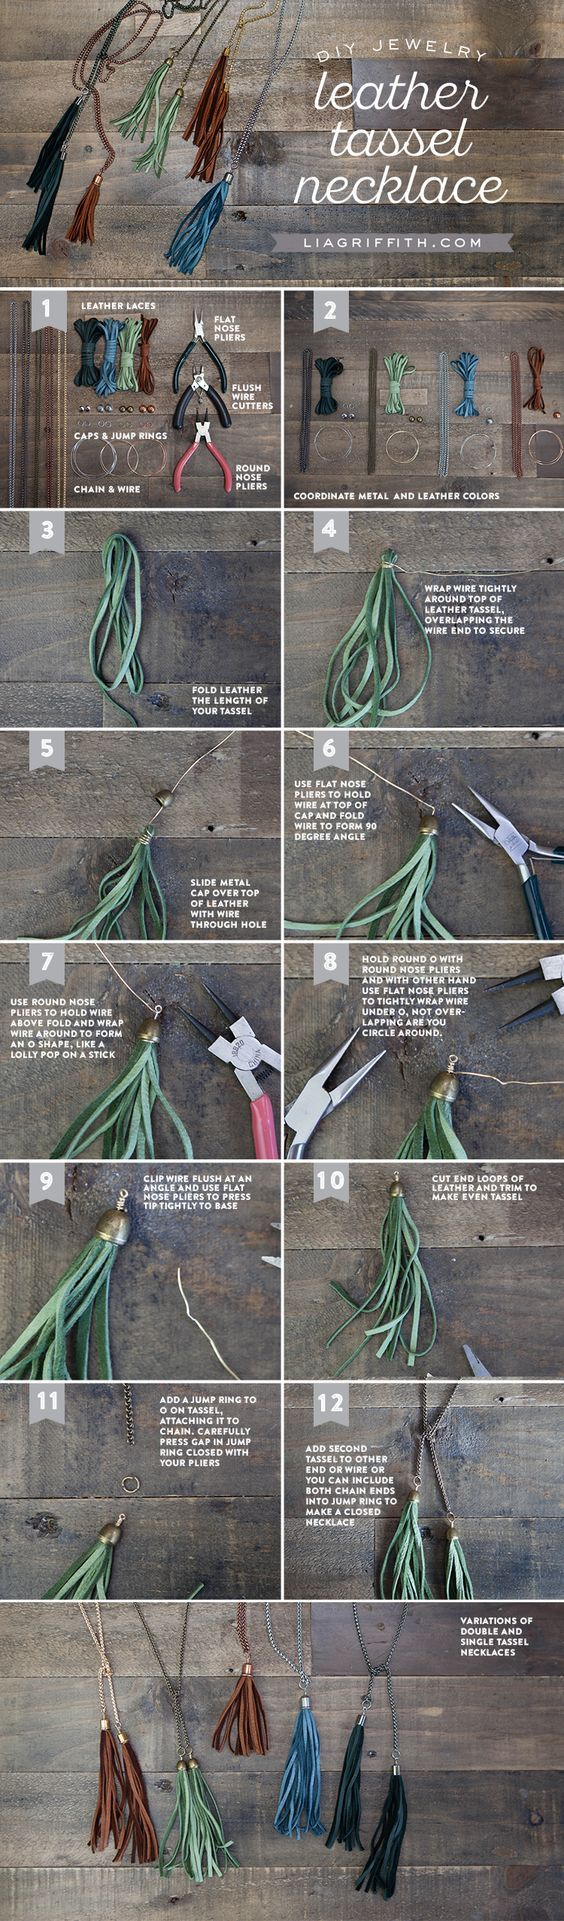 DIY Leather Tassel Necklace how-to by Michaels Makers Lia Griffith: